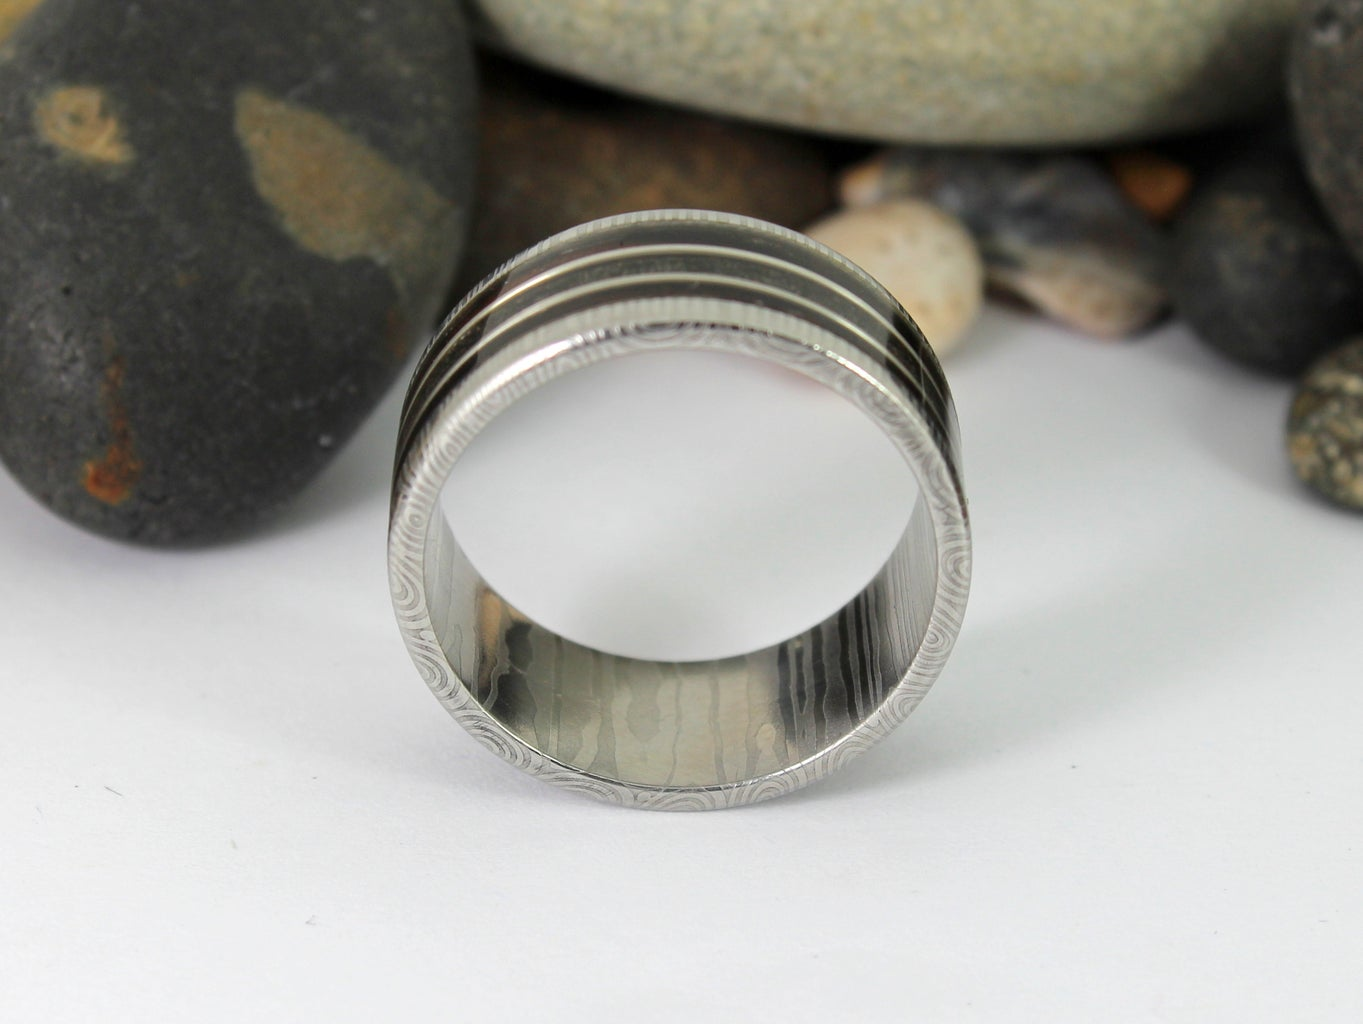 The Final Megalodon Tooth Ring